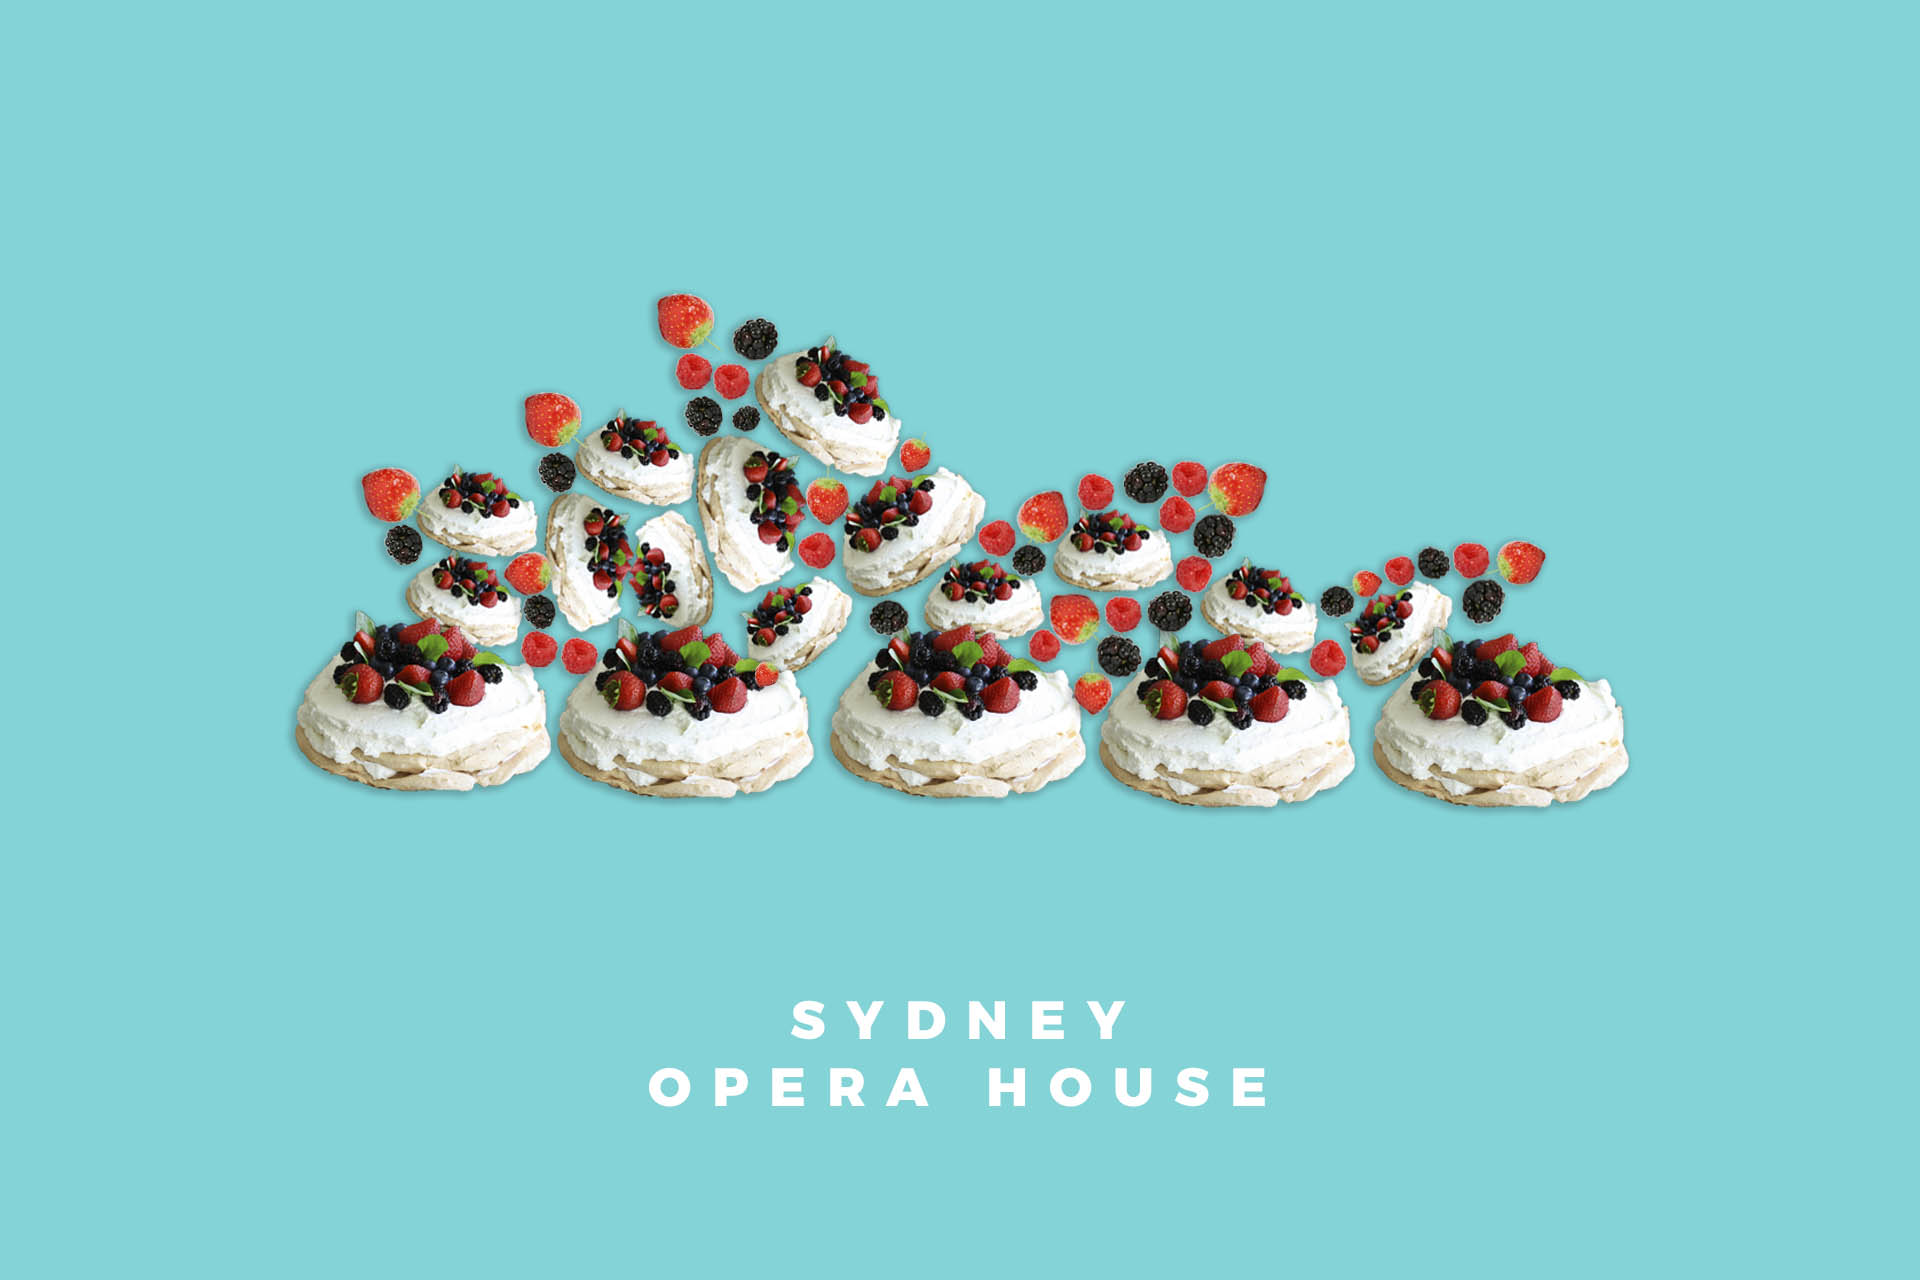 Sydney Opera House pavlova food illustration